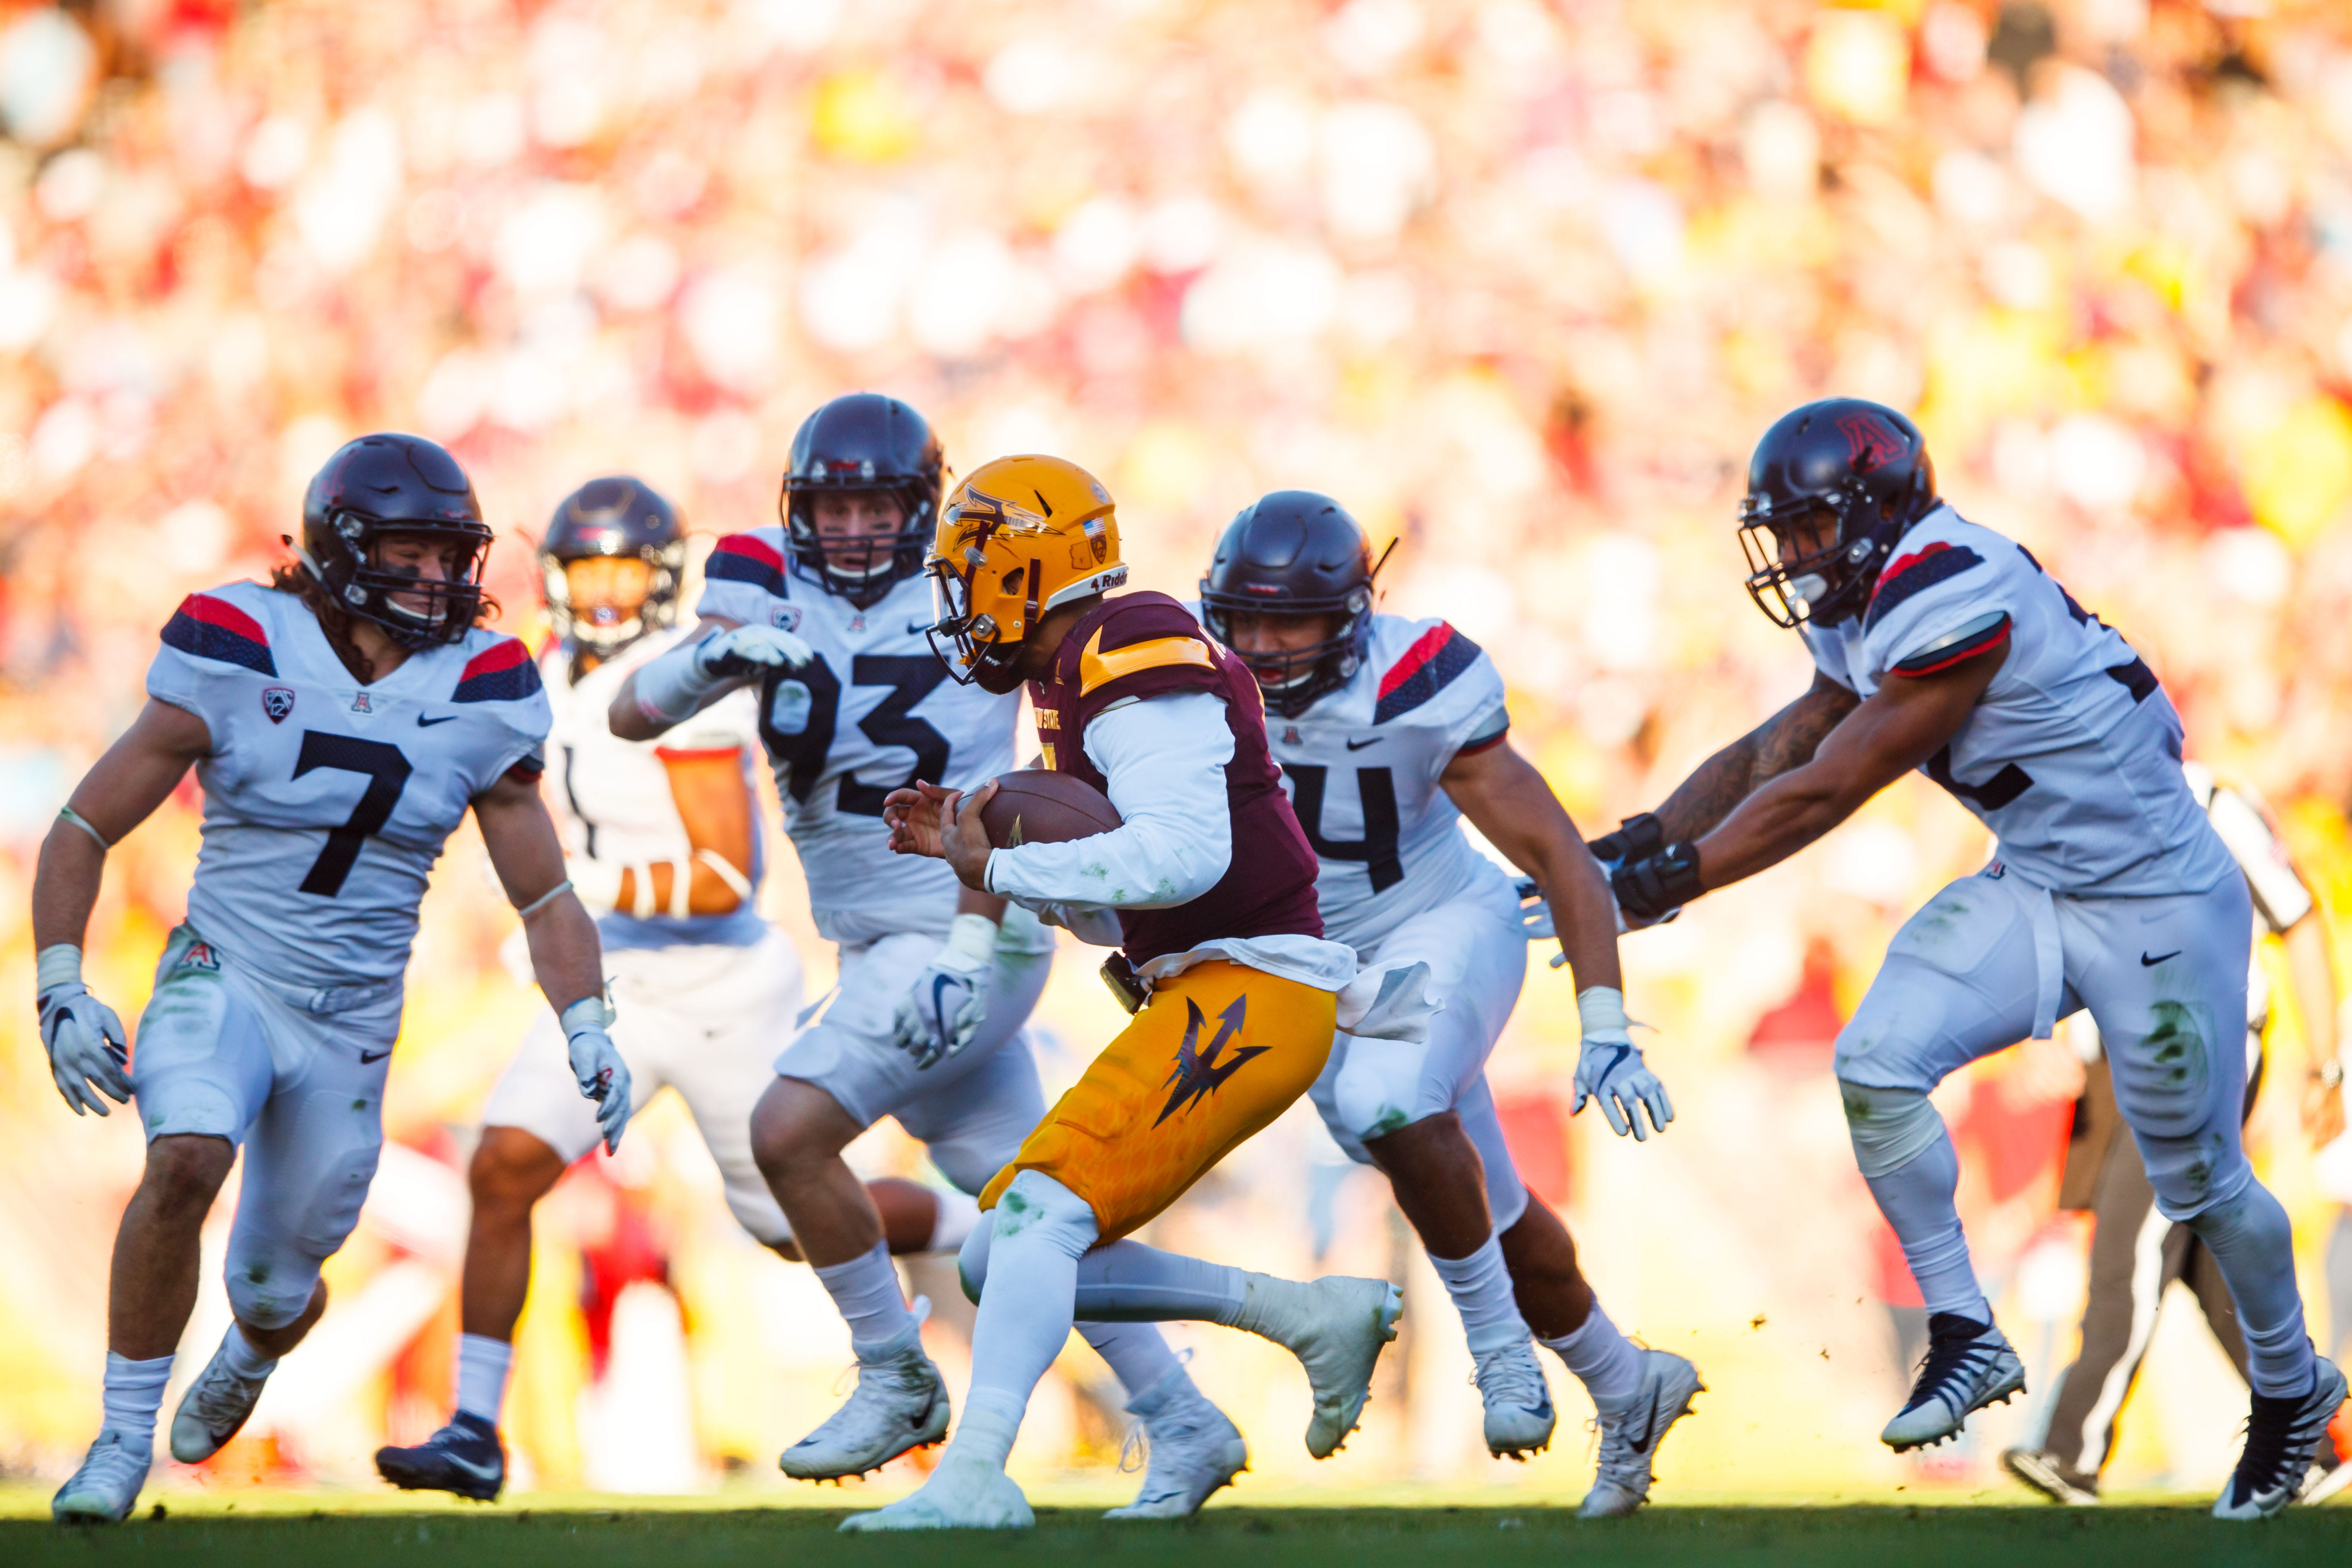 Arizona Wildcats vs Arizona State Sun Devils Football [11 ...